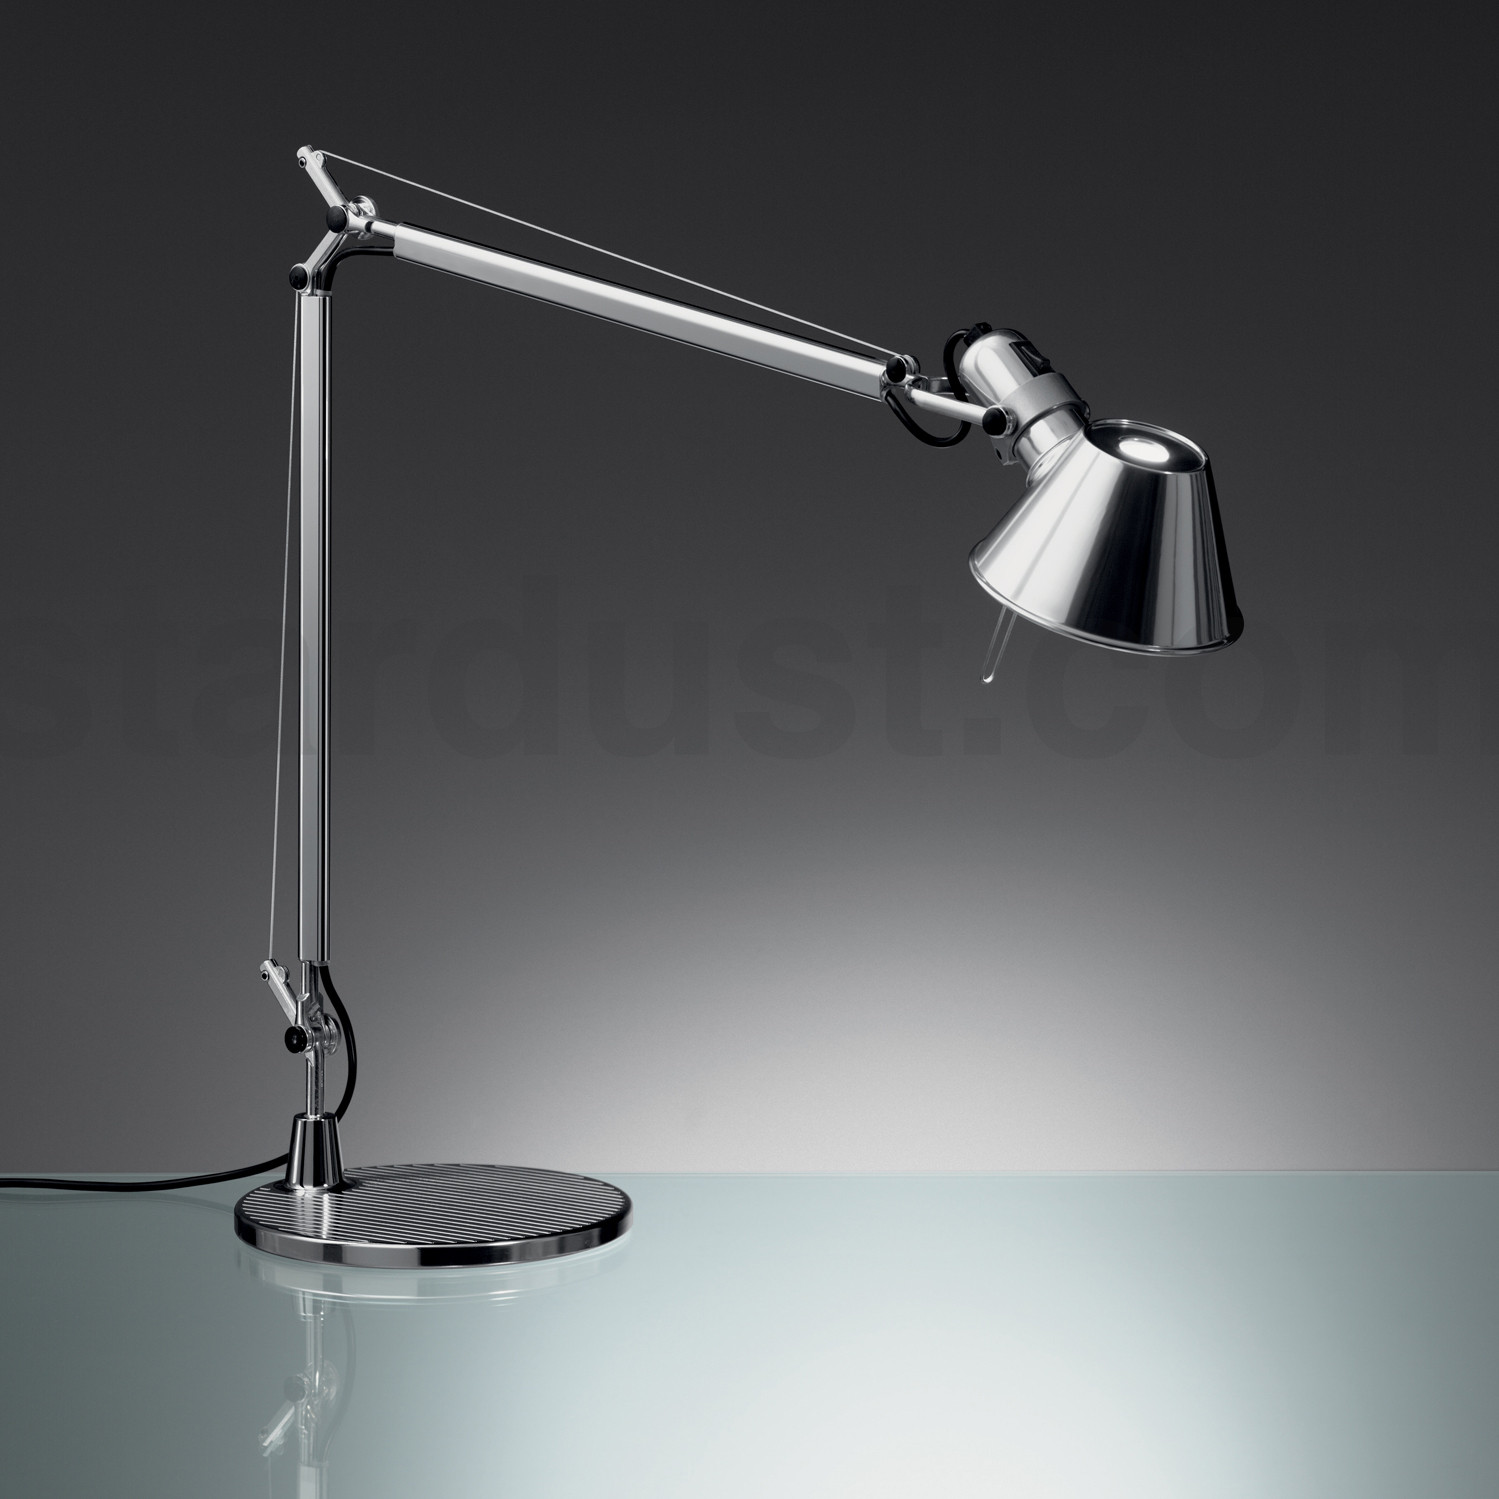 Best ideas about Modern Desk Lamp . Save or Pin Home ficeDecoration Now.